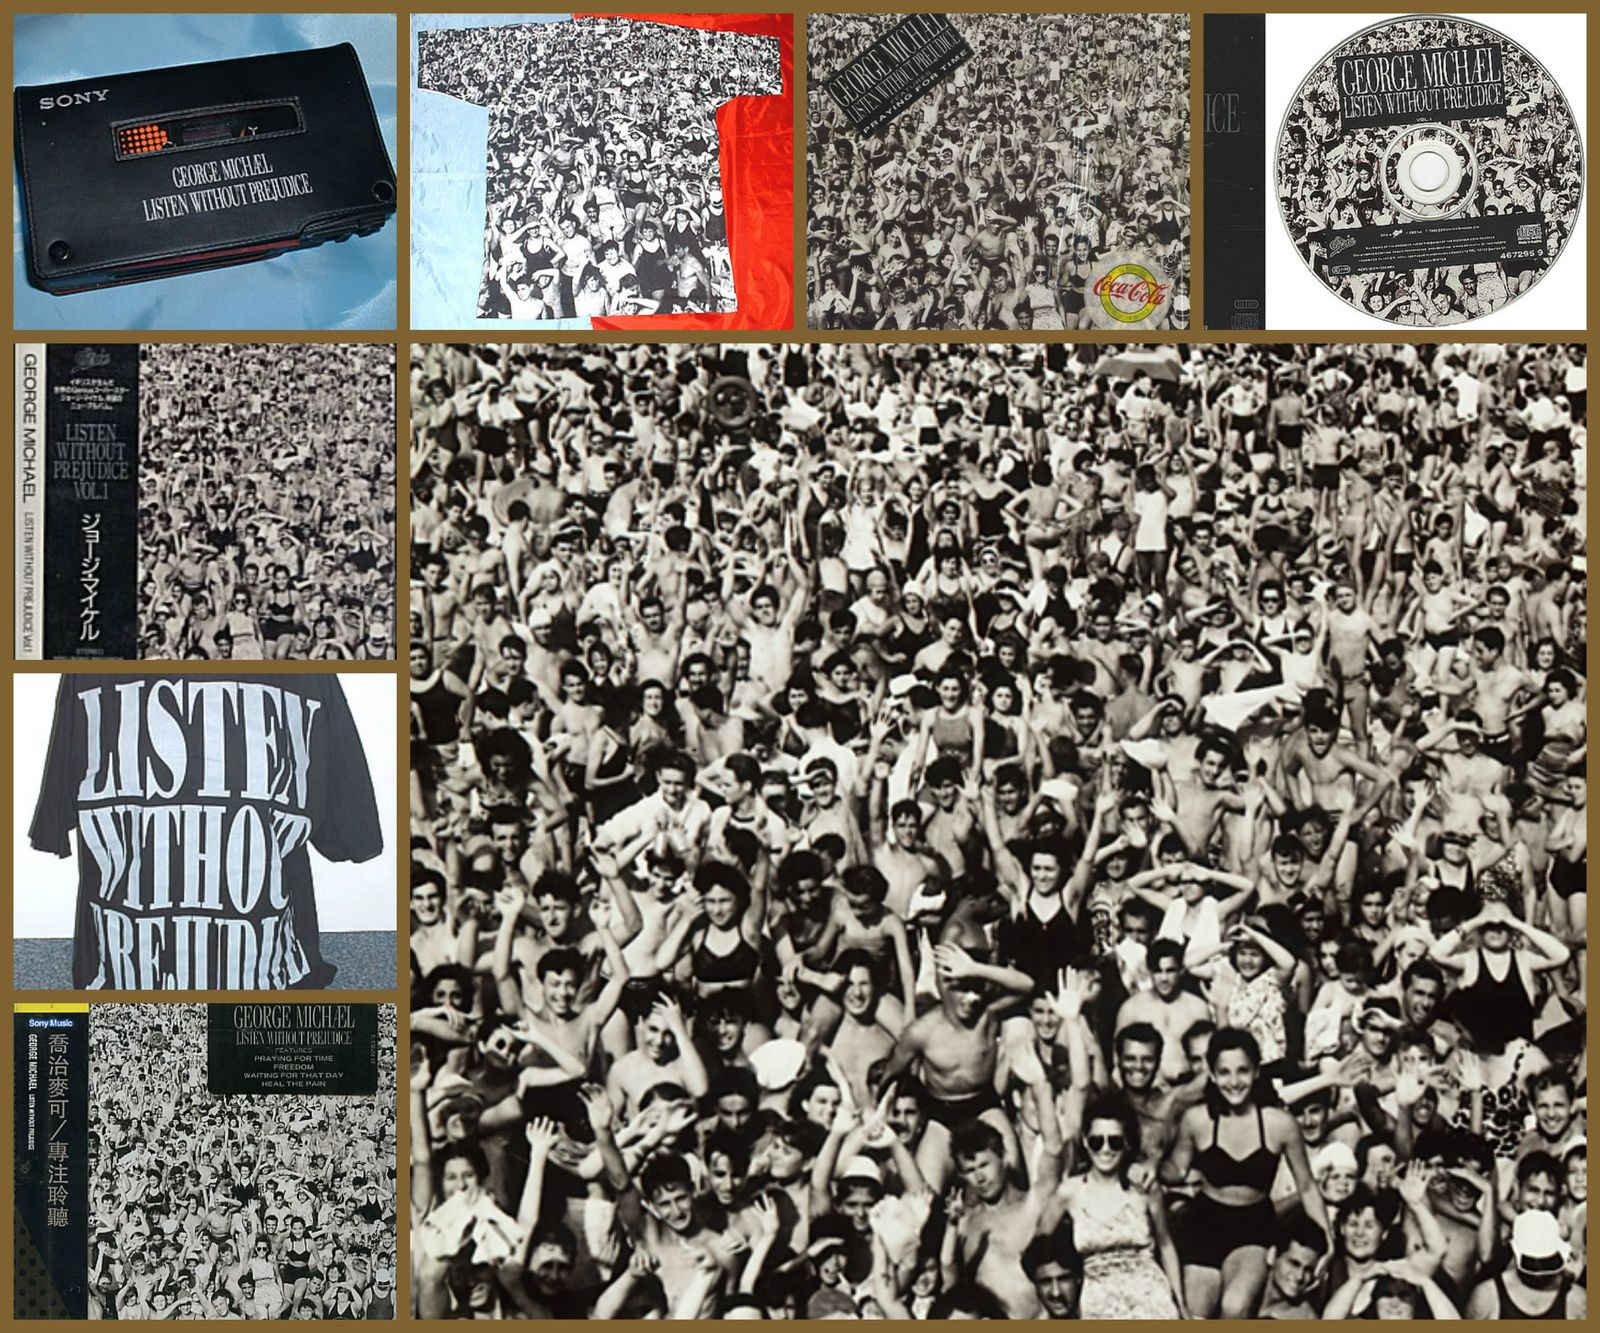 LISTEN WITHOUT PREJUDICE LE 3 SEPTEMBRE 1990